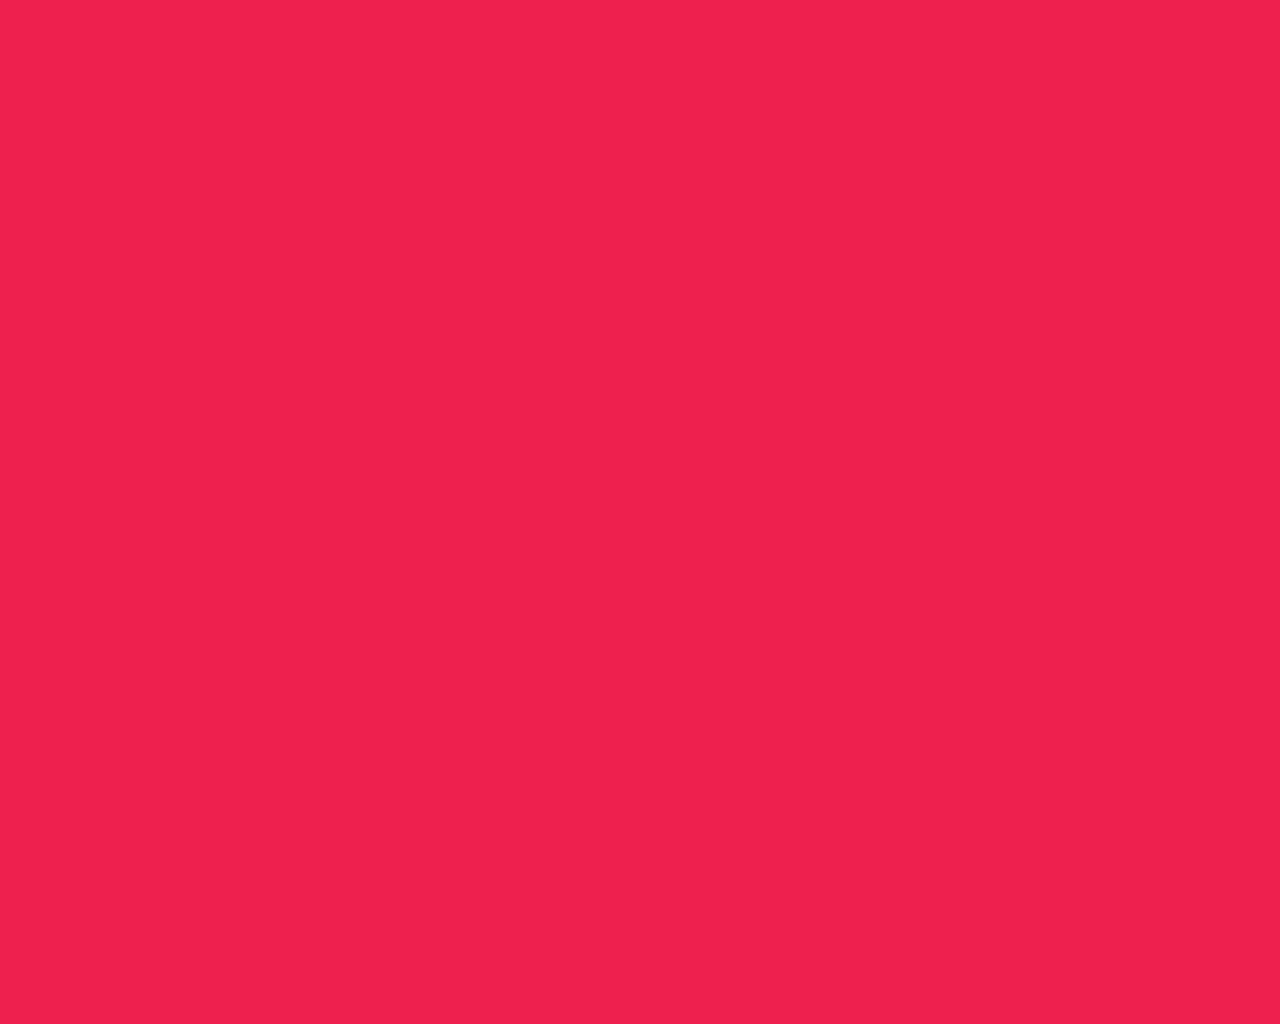 1280x1024 Red Crayola Solid Color Background